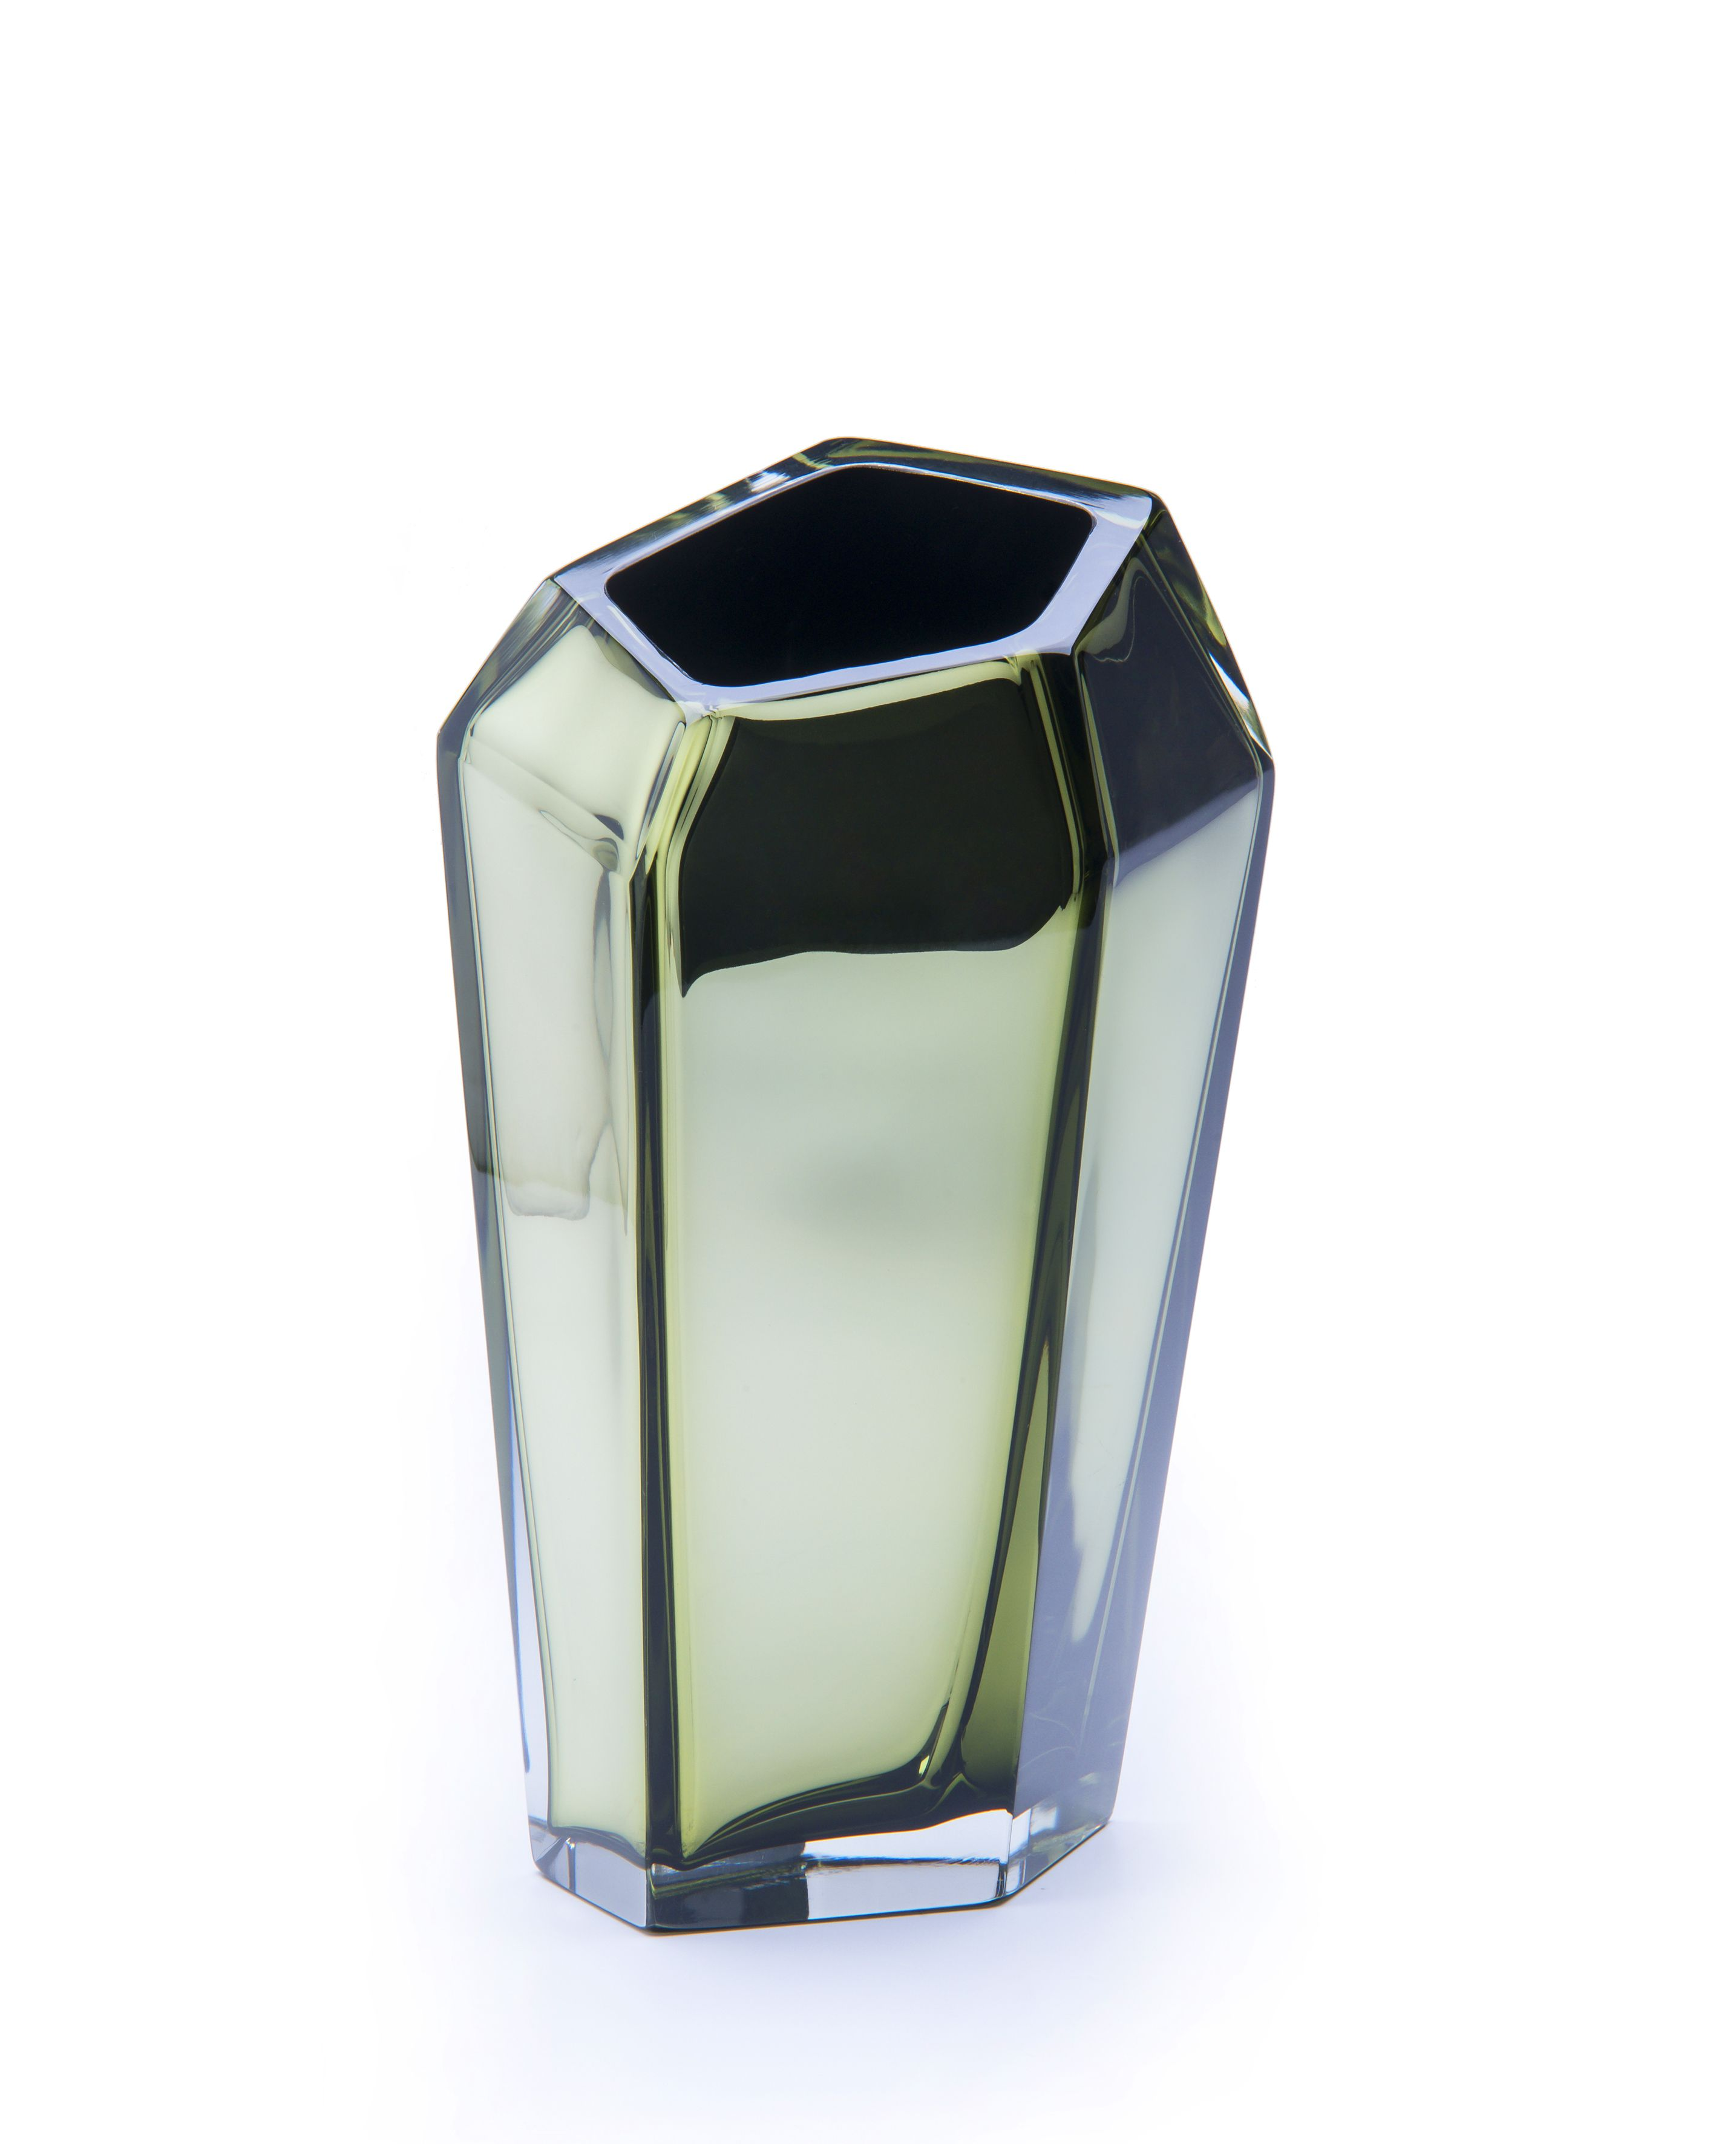 """Purho made in Italy, """"Kastle"""" (design KARIM RASHID) Vase hand-crafted Murano glass h. 40 cm 8 colors available limited and numbered edition available colours: bronze, aqua marine, gold green, amethyst, blue, pink, grey, silver"""